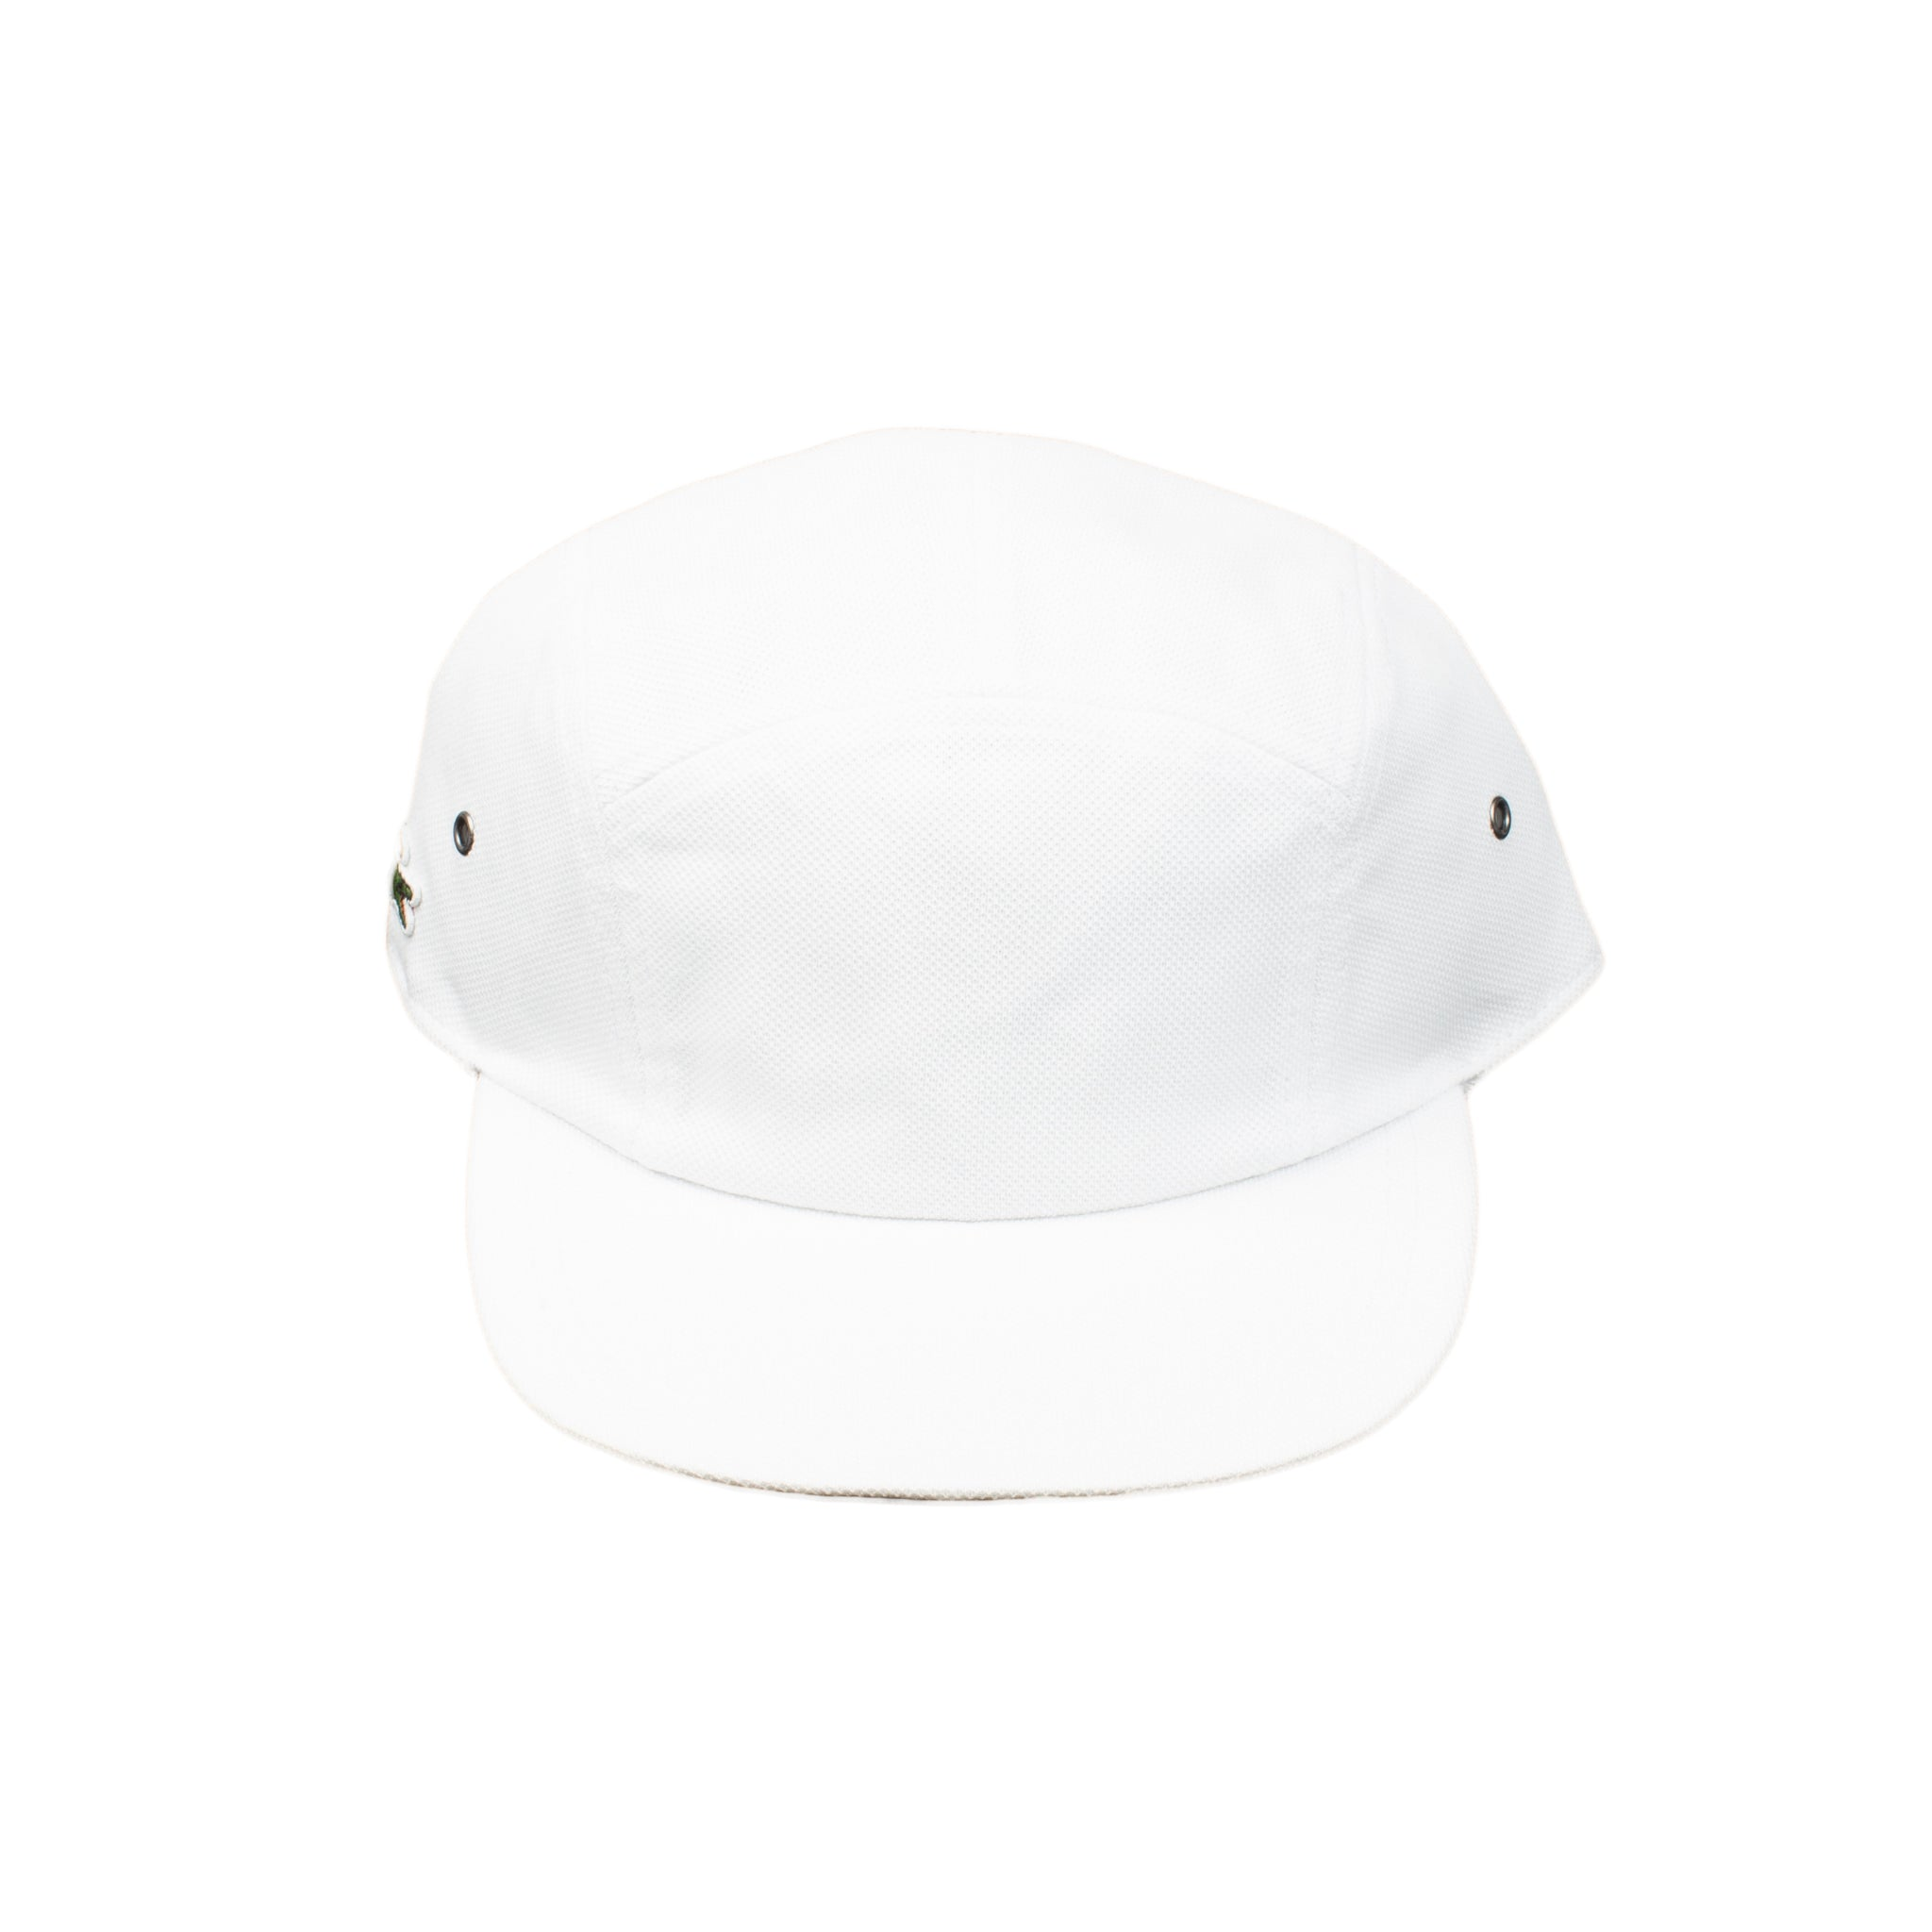 Supreme White Lacoste Pique Camp Cap